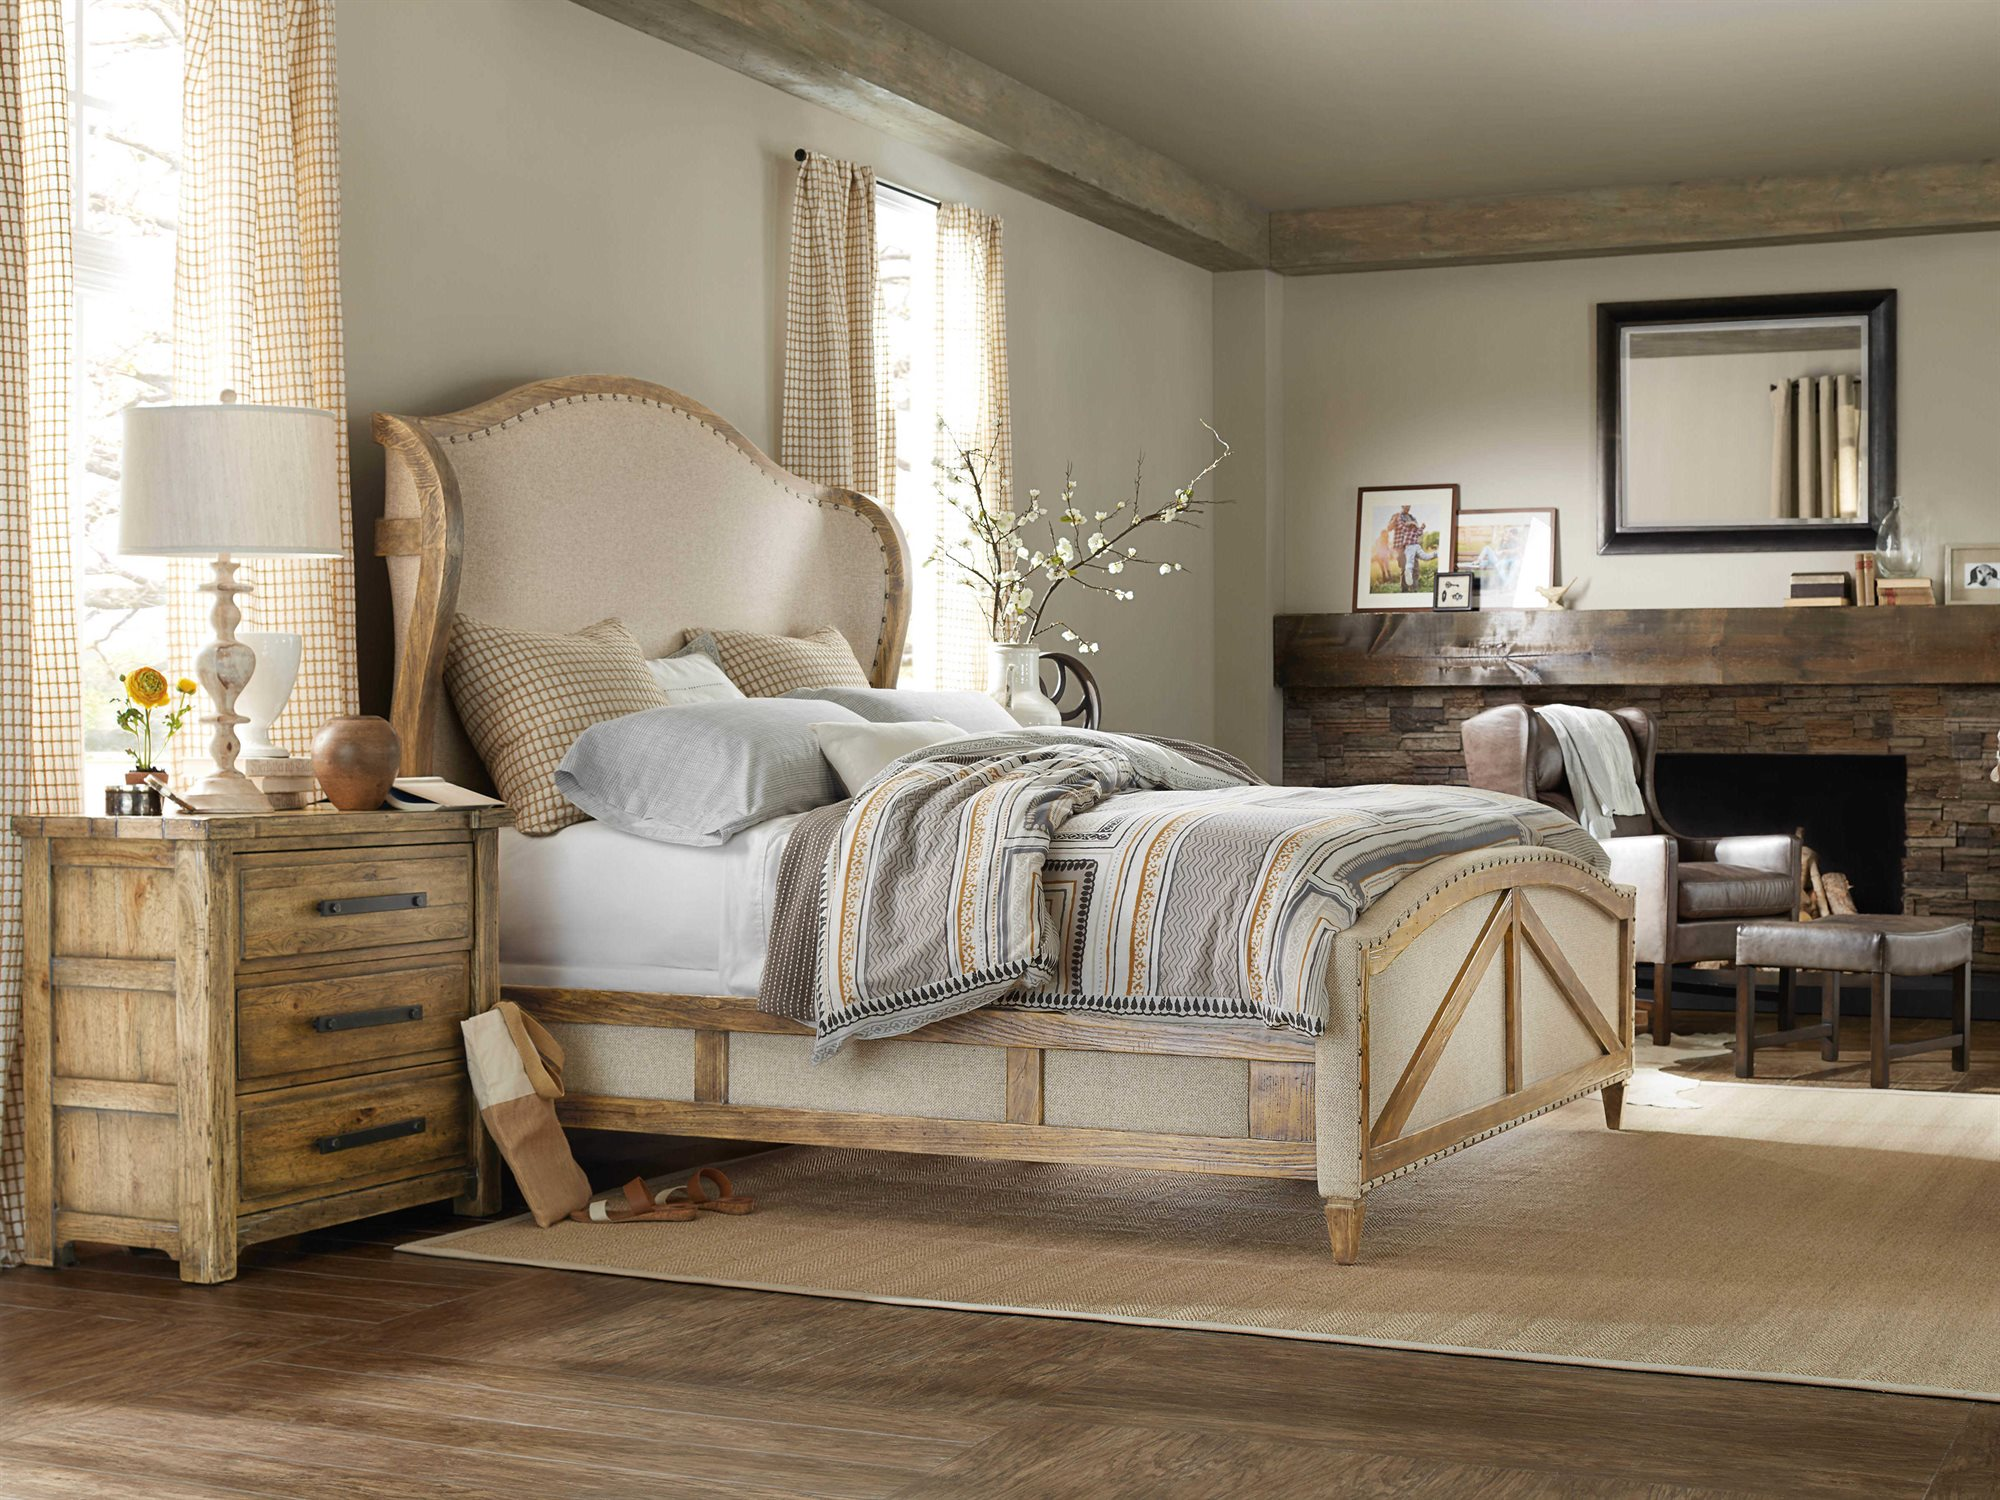 Hooker Furniture American Life-roslyn County Bedroom Set